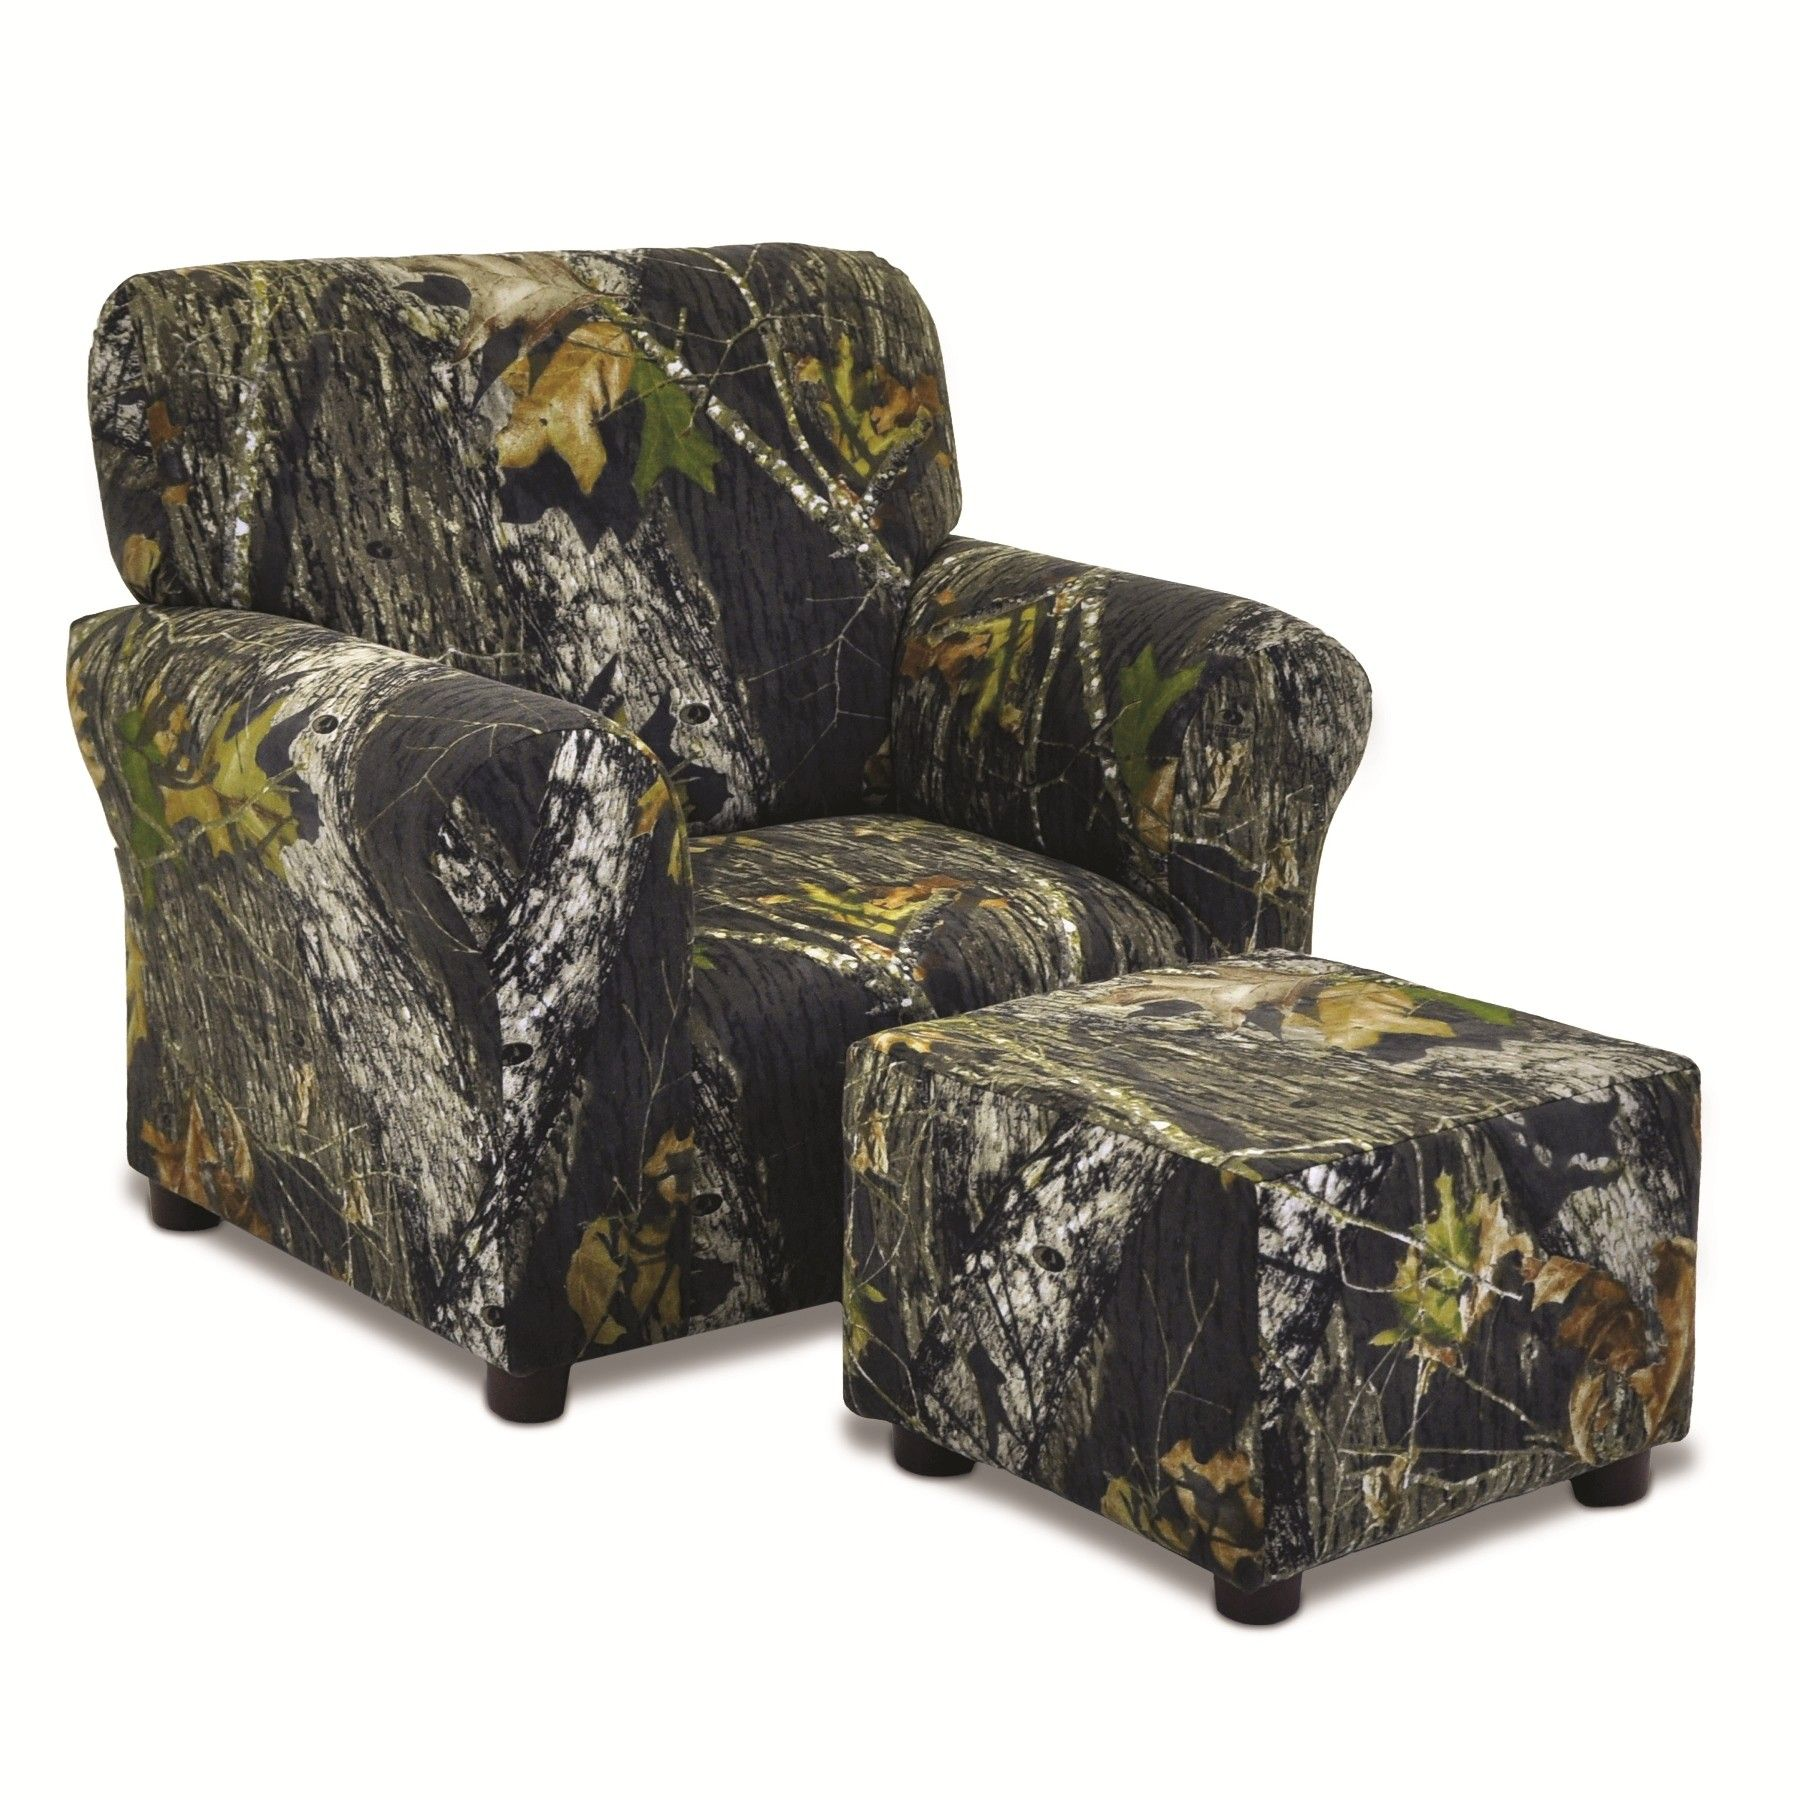 Mossy Oak Camouflage Club Chair And Ottoman Set Camo Furniture